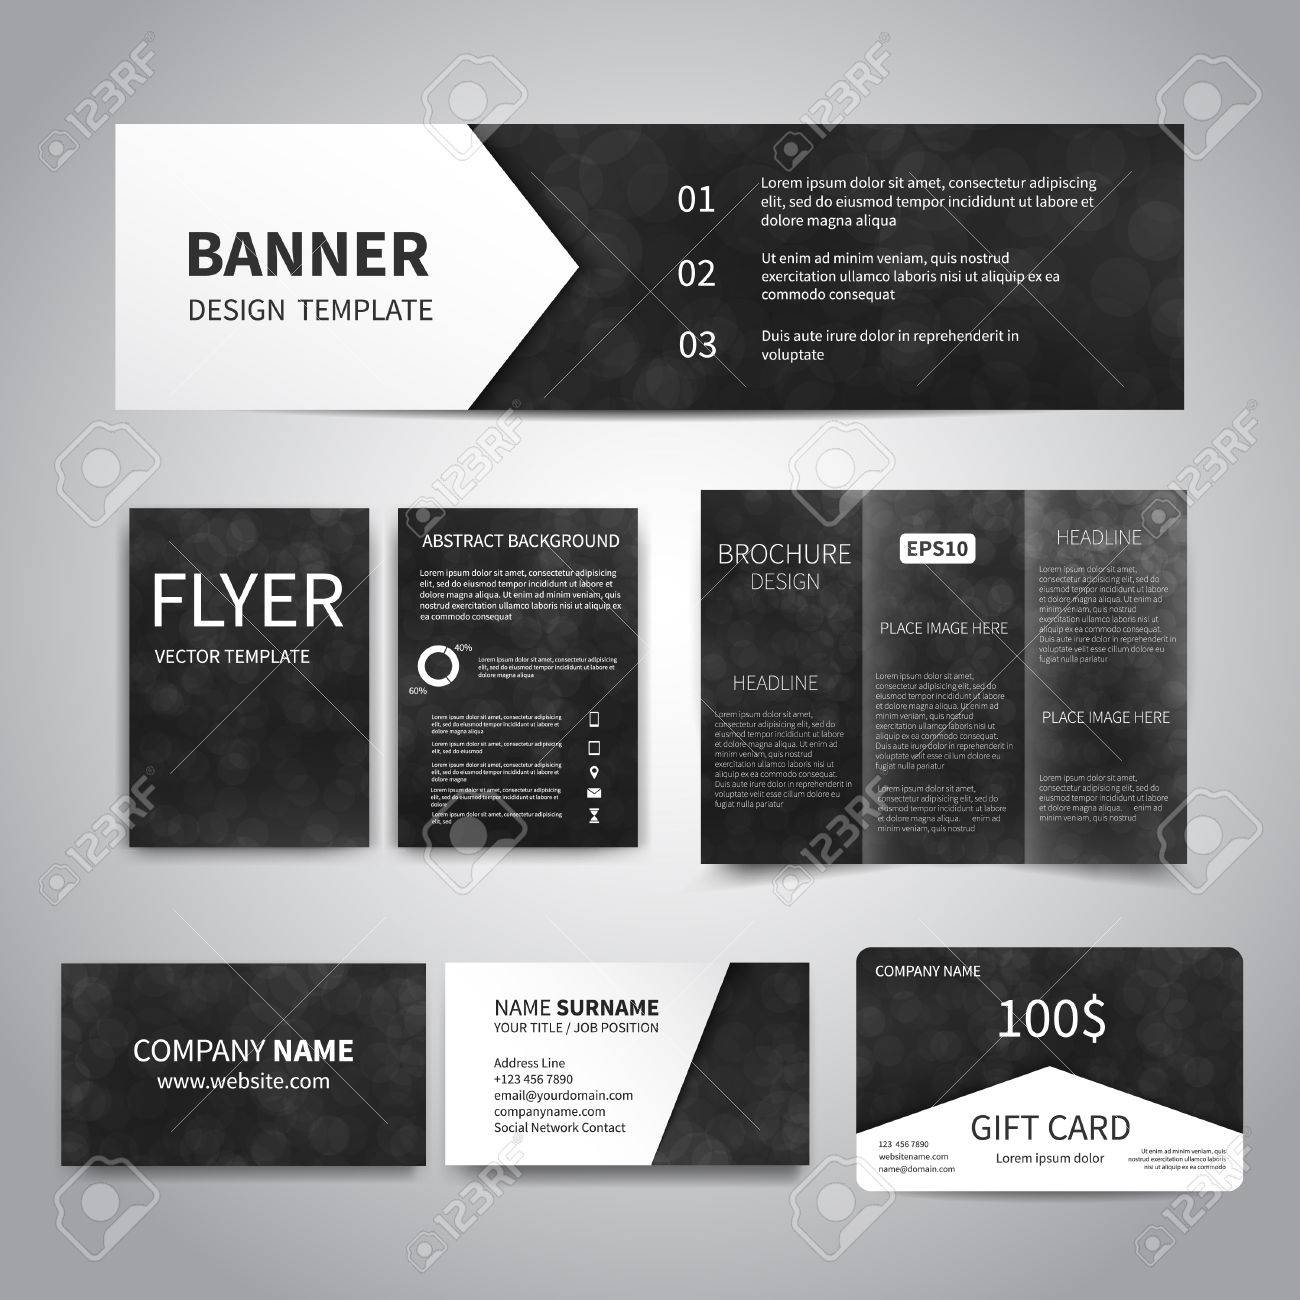 Banner flyers brochure business cards gift card design templates banner flyers brochure business cards gift card design templates set with beautiful colourmoves